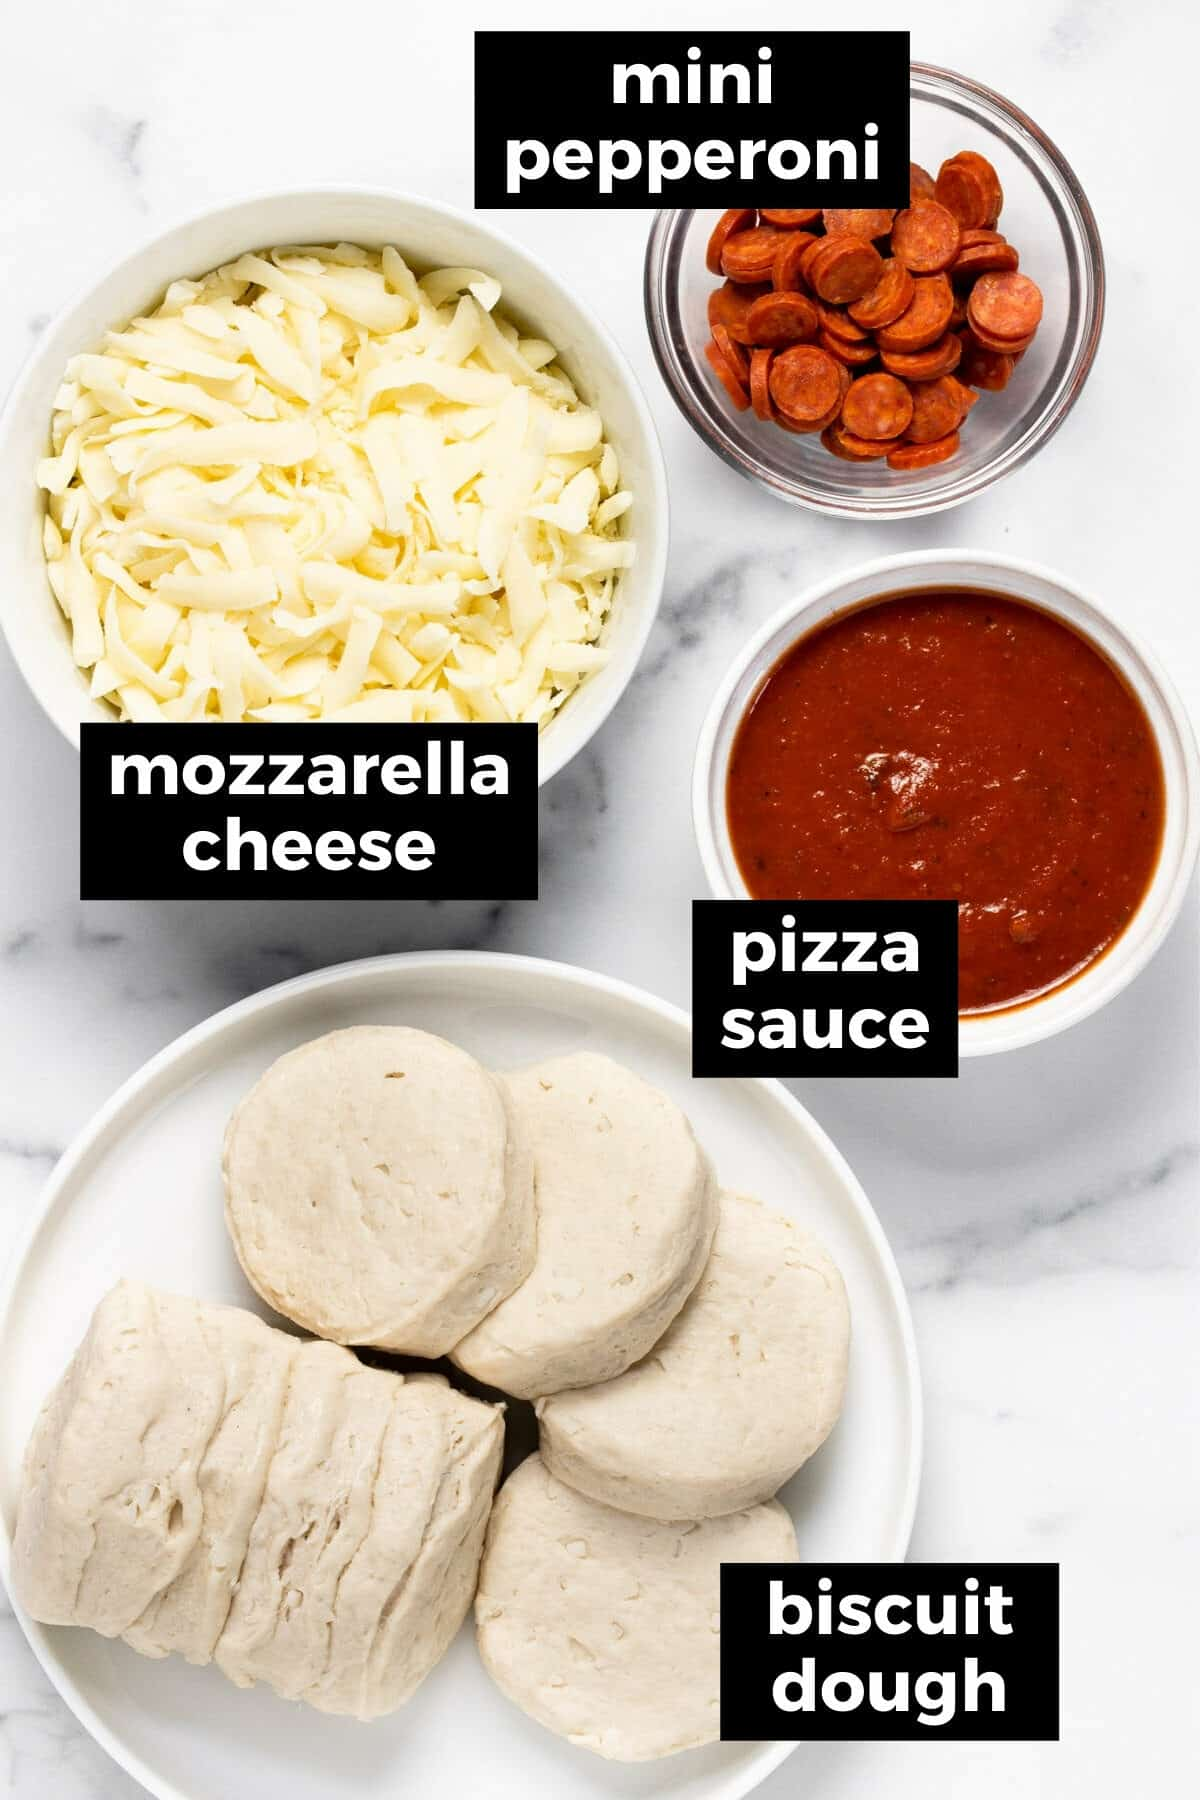 White marble counter top with ingredients to make homemade personal pizzas